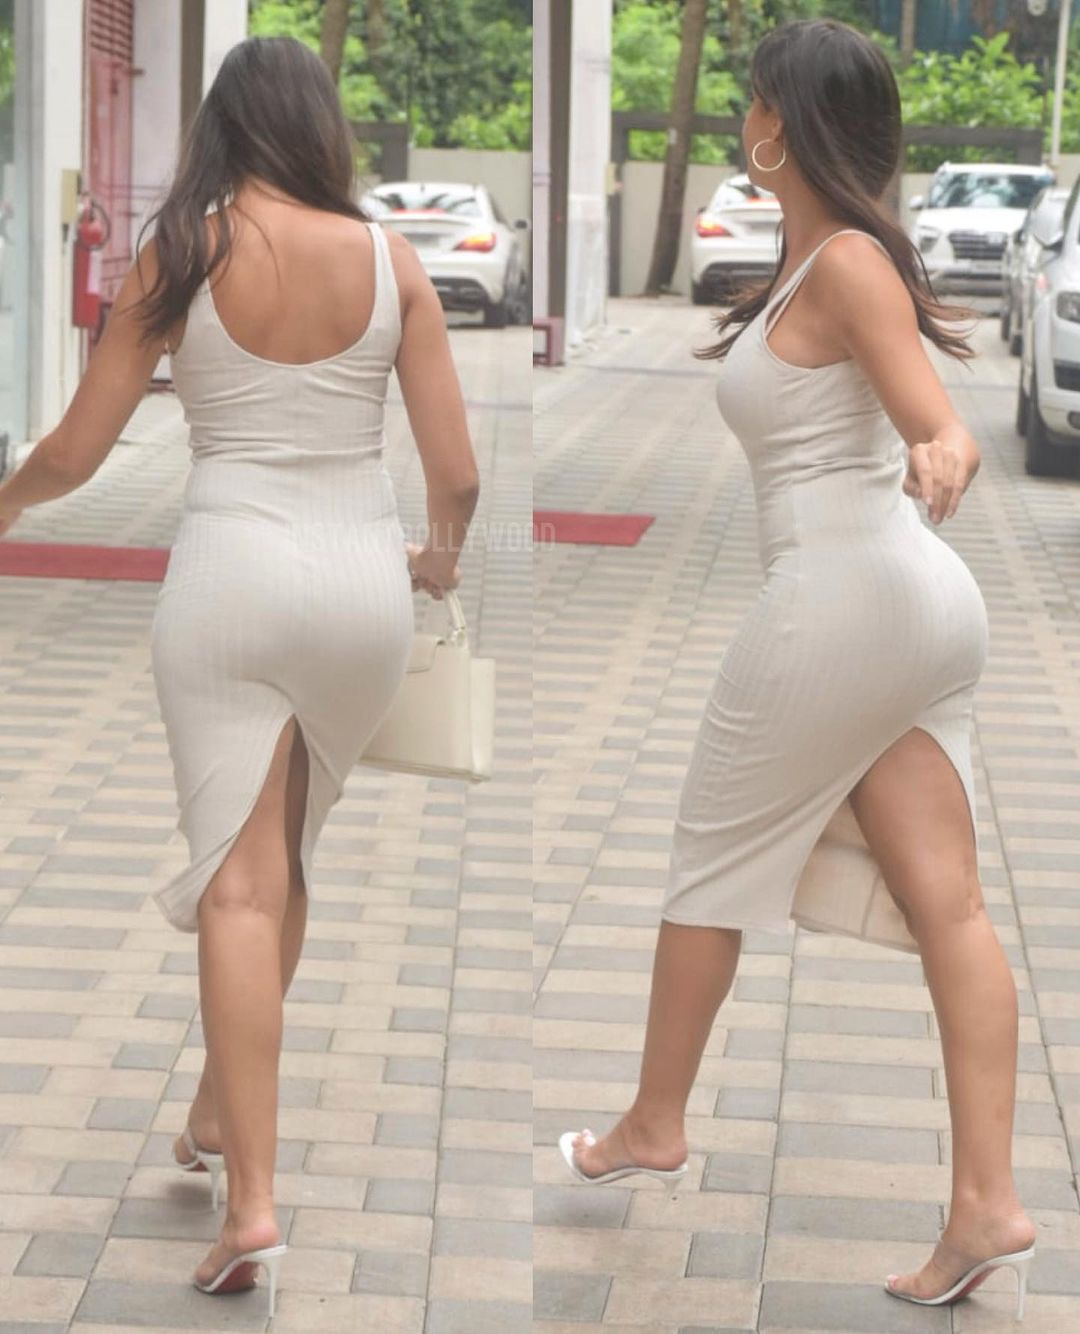 Nora Fatehi Bootylicious Curves in Bodycon Dress